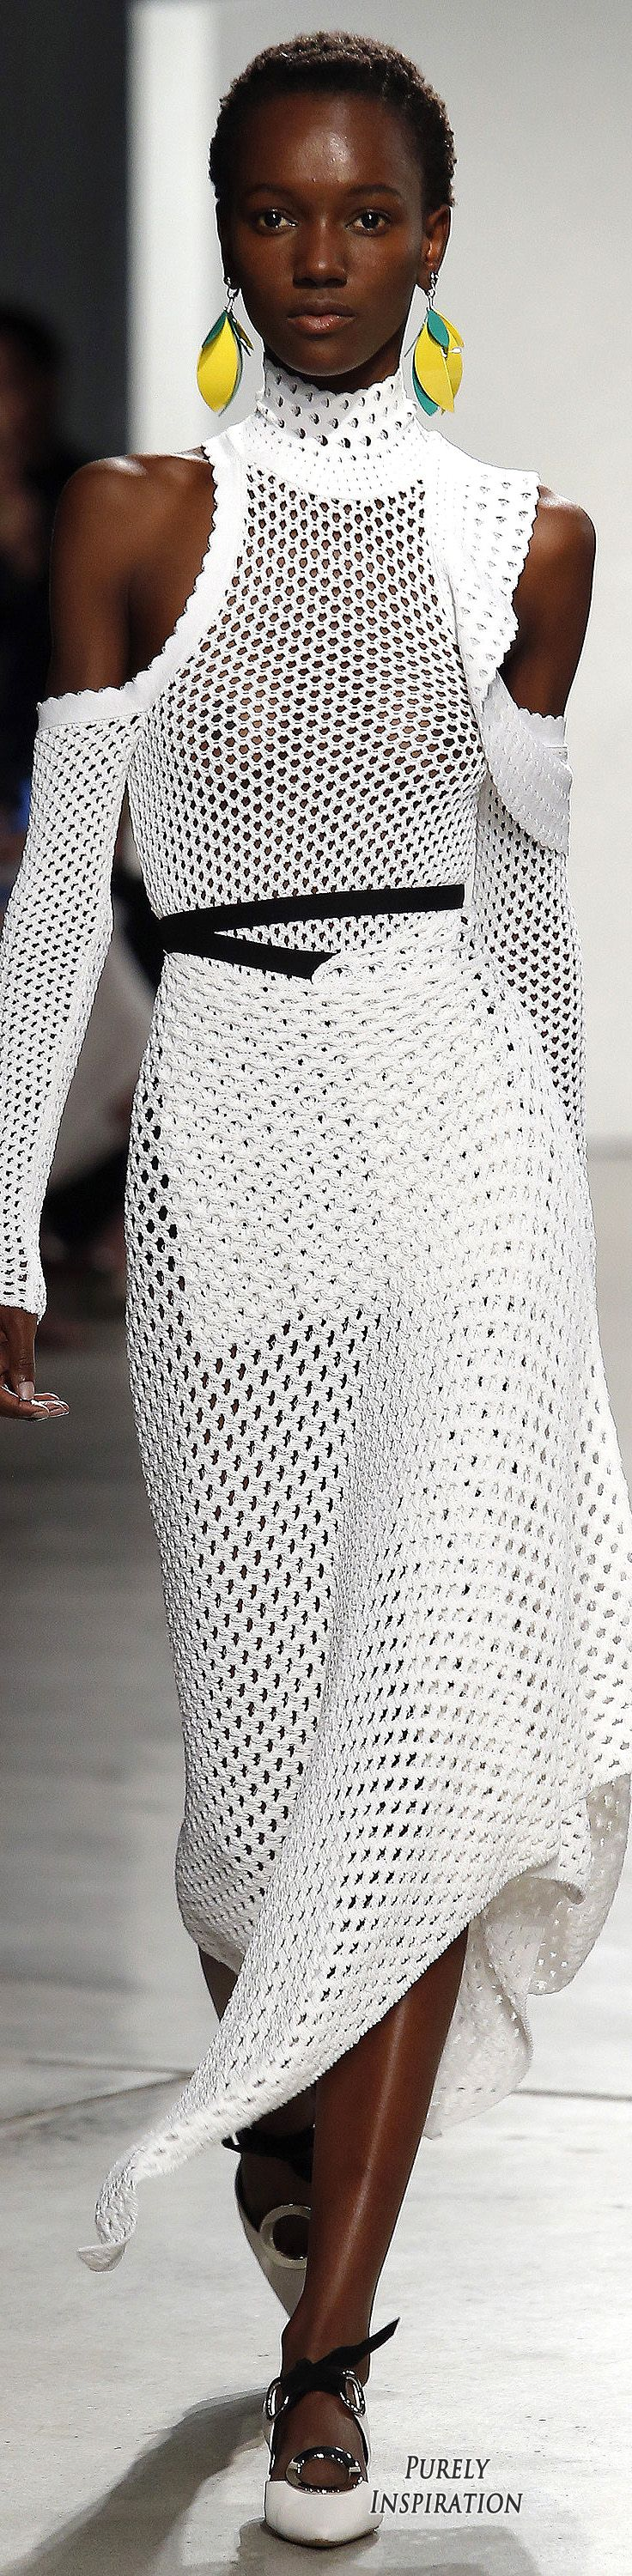 Proenza Schouler SS2016 Women's Fashion RTW | Purely Inspiration